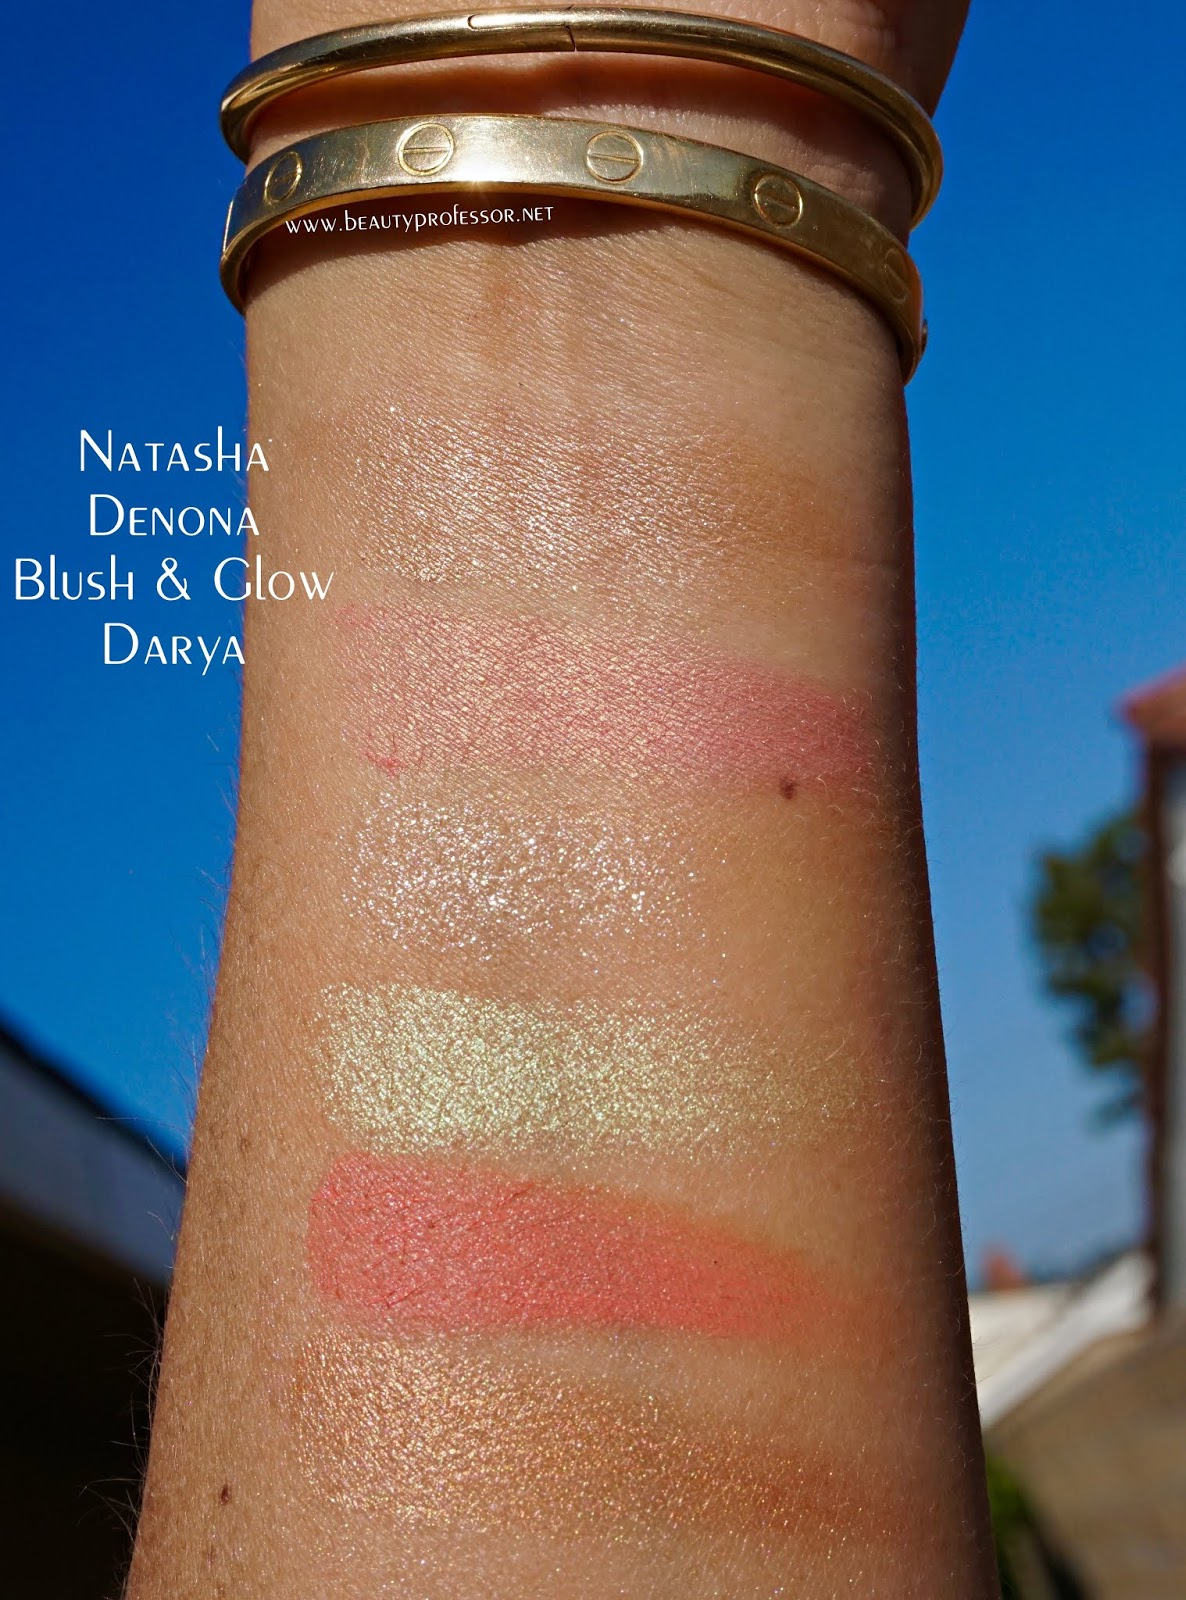 Natasha denona blush and glow darya swatches